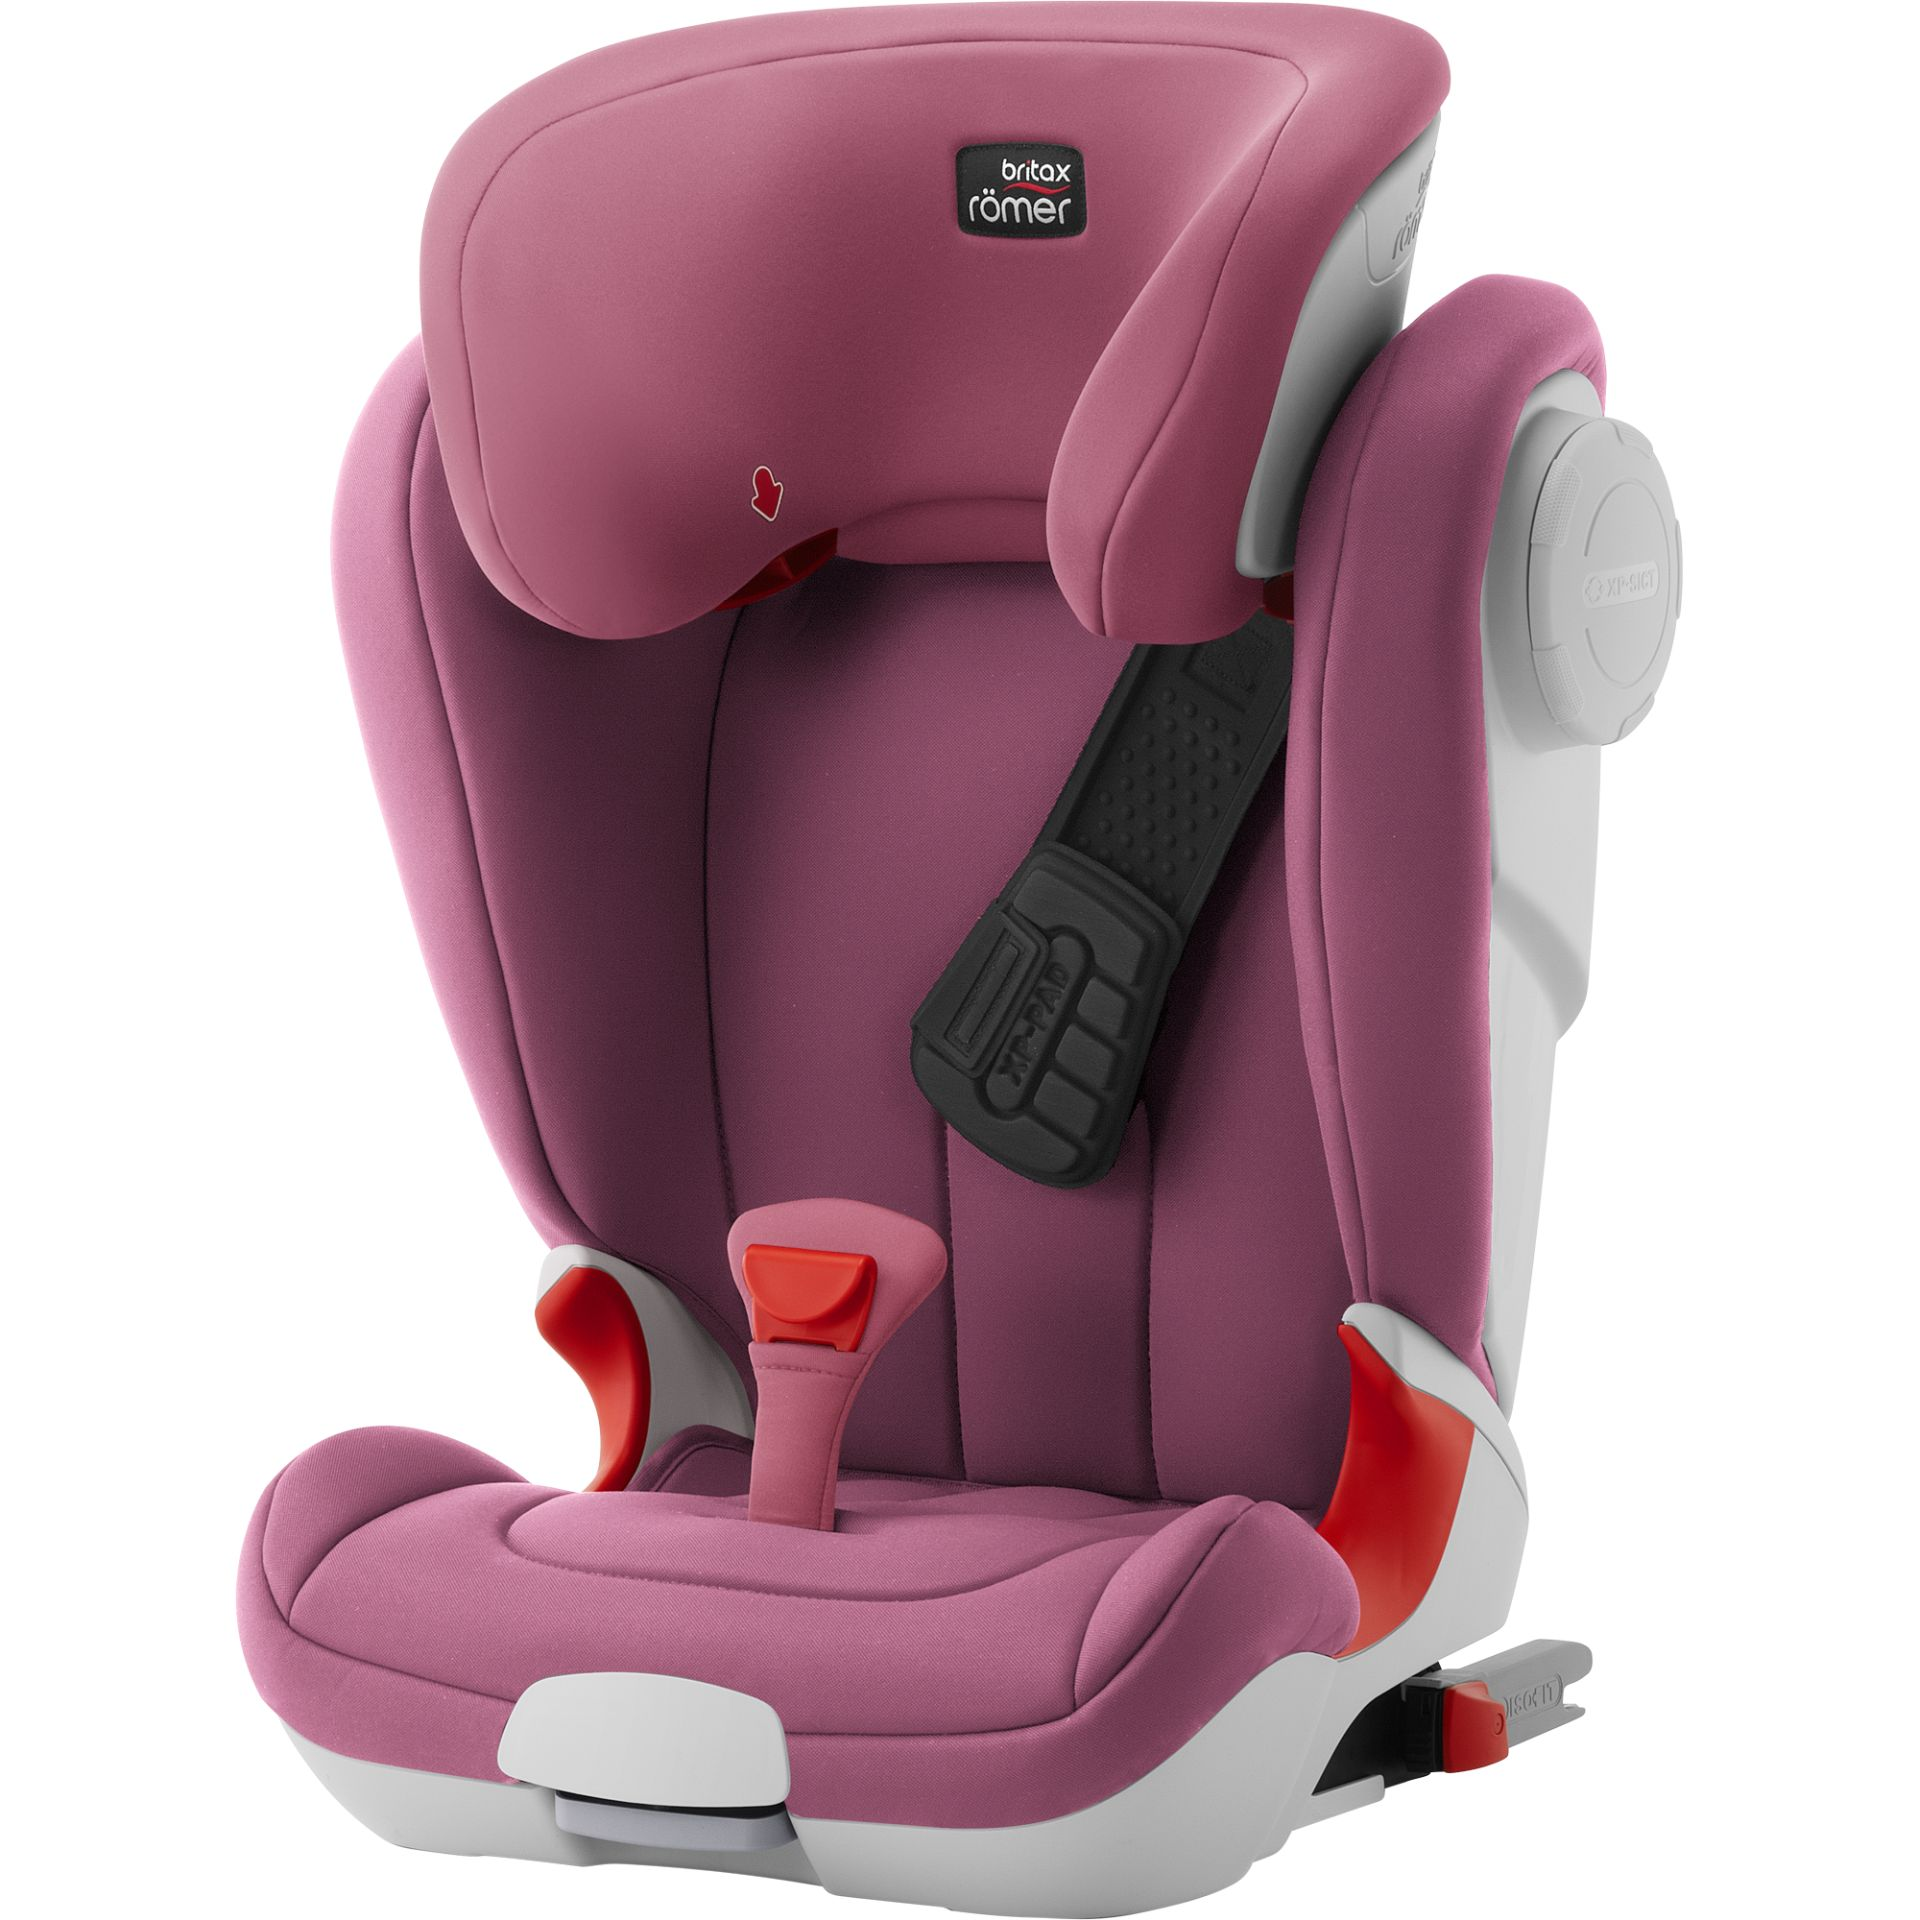 britax r mer child car seat kidfix ii xp sict 2018 wine. Black Bedroom Furniture Sets. Home Design Ideas